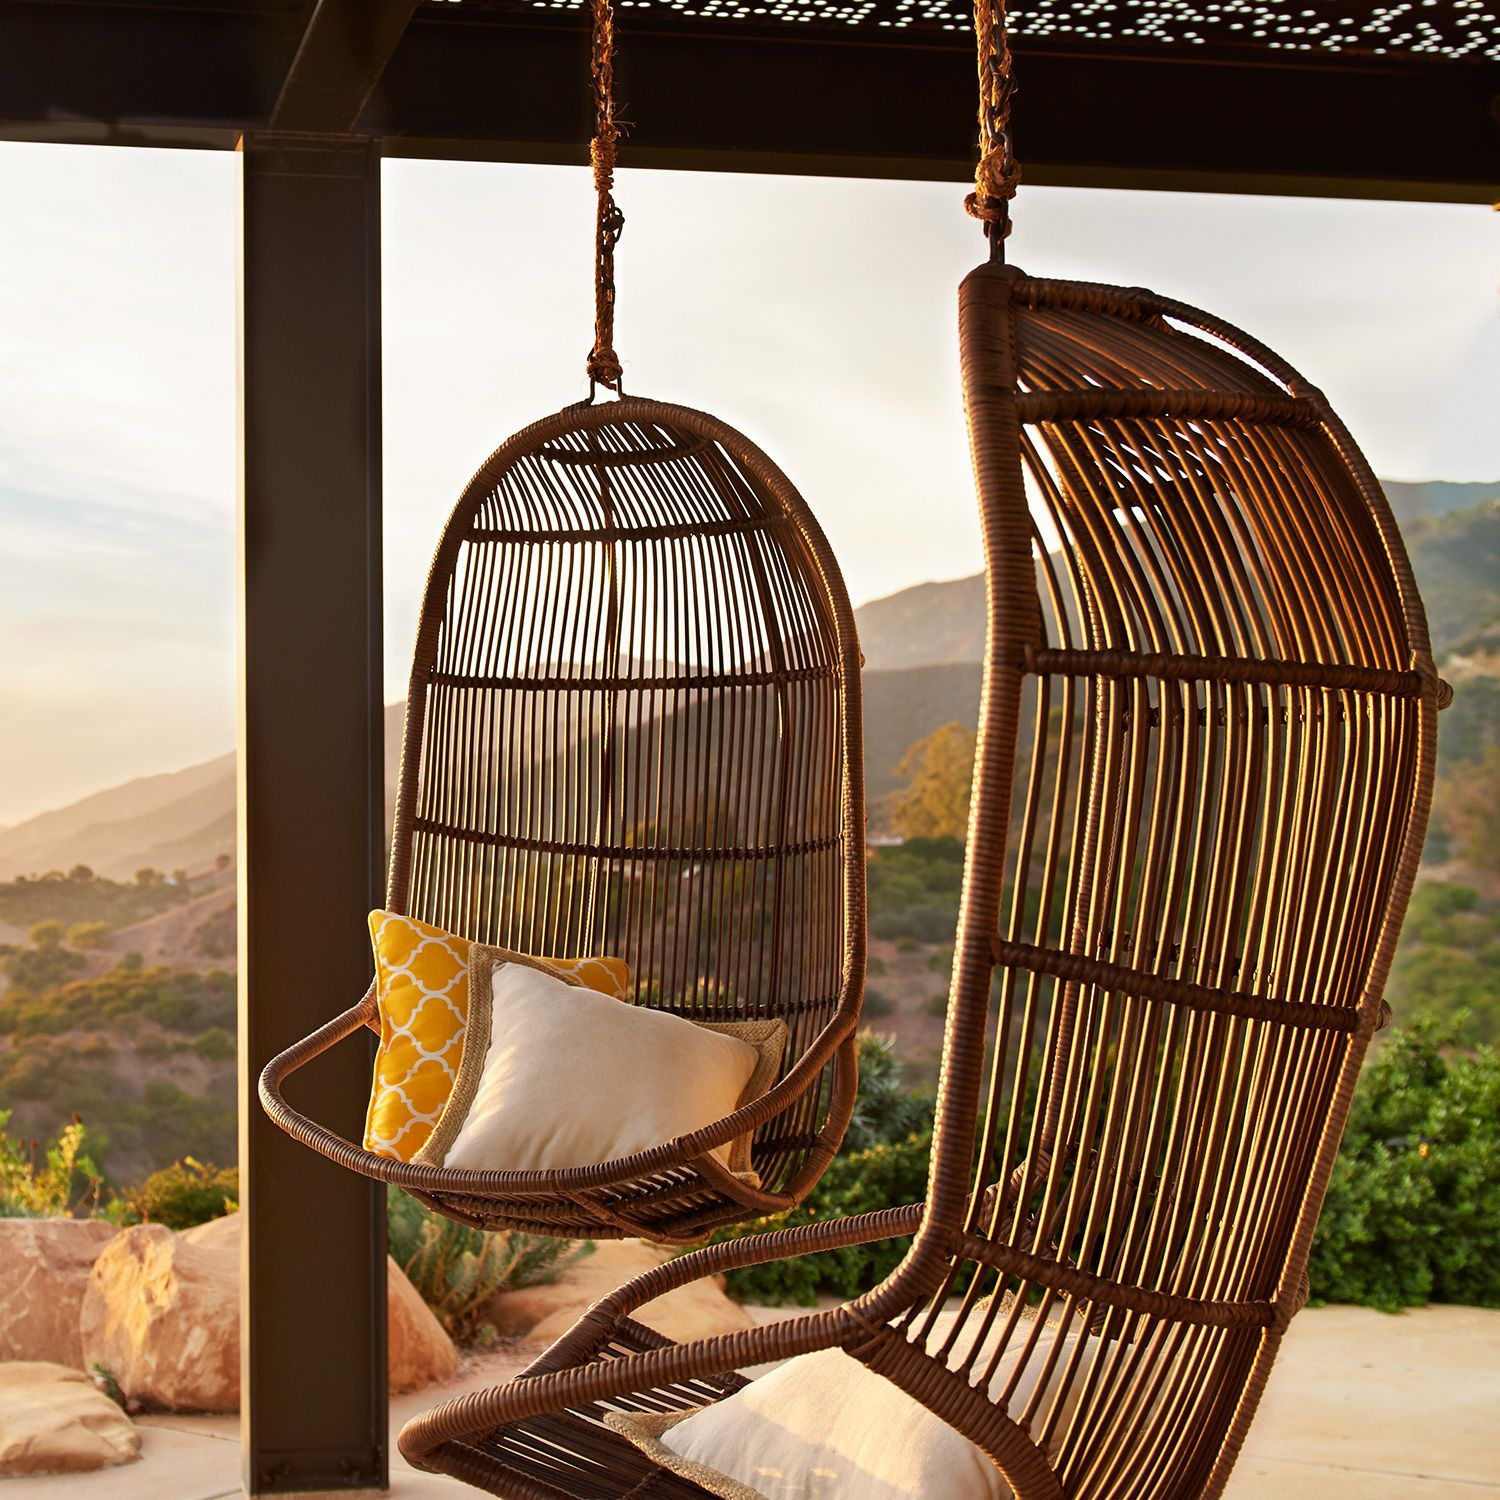 Willow Swingasan Chair Latte Swingasan Chair Patio Swing